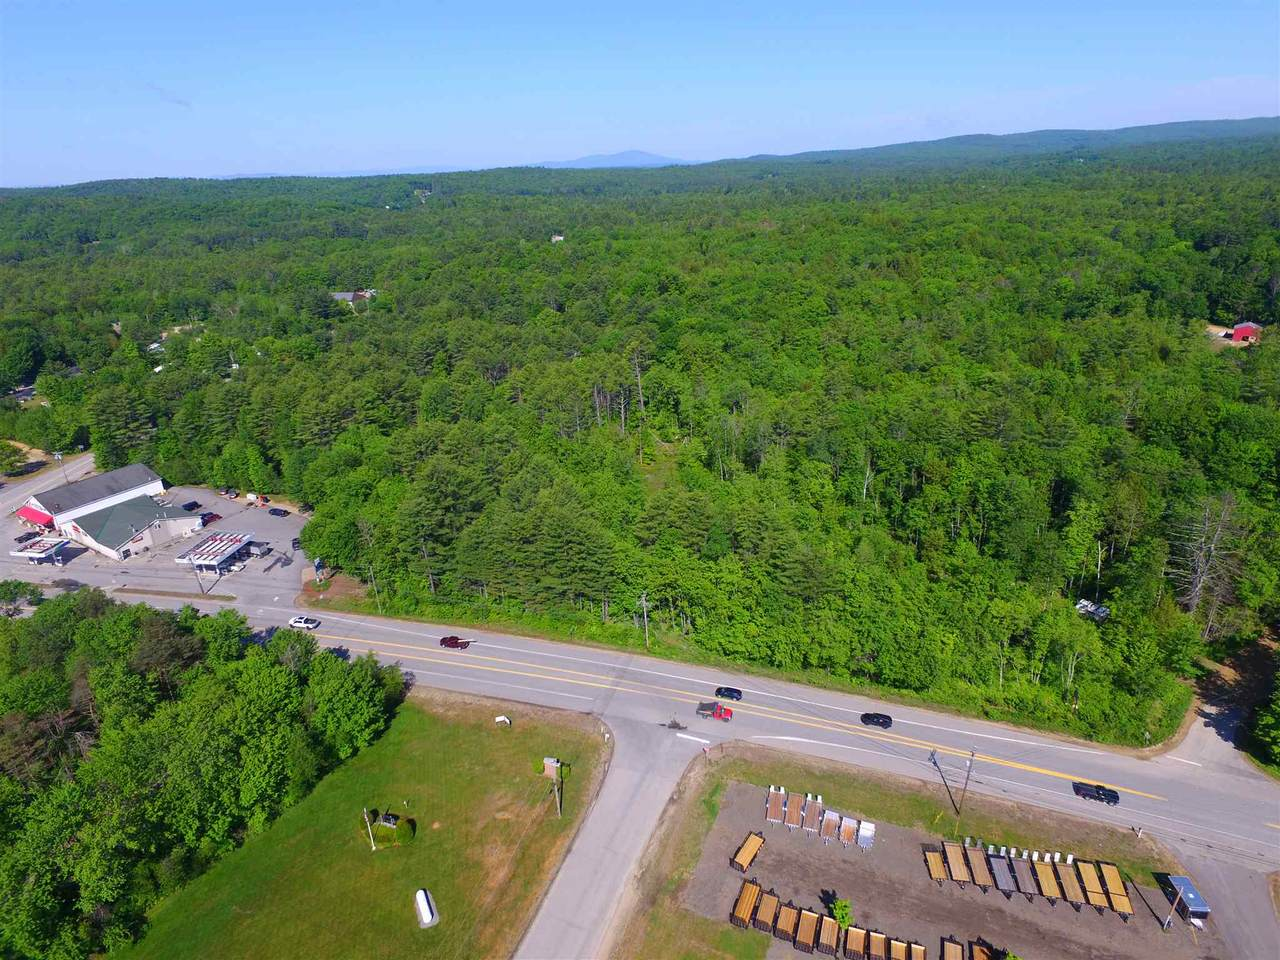 0 Nh Route 106 North Route - Photo 1